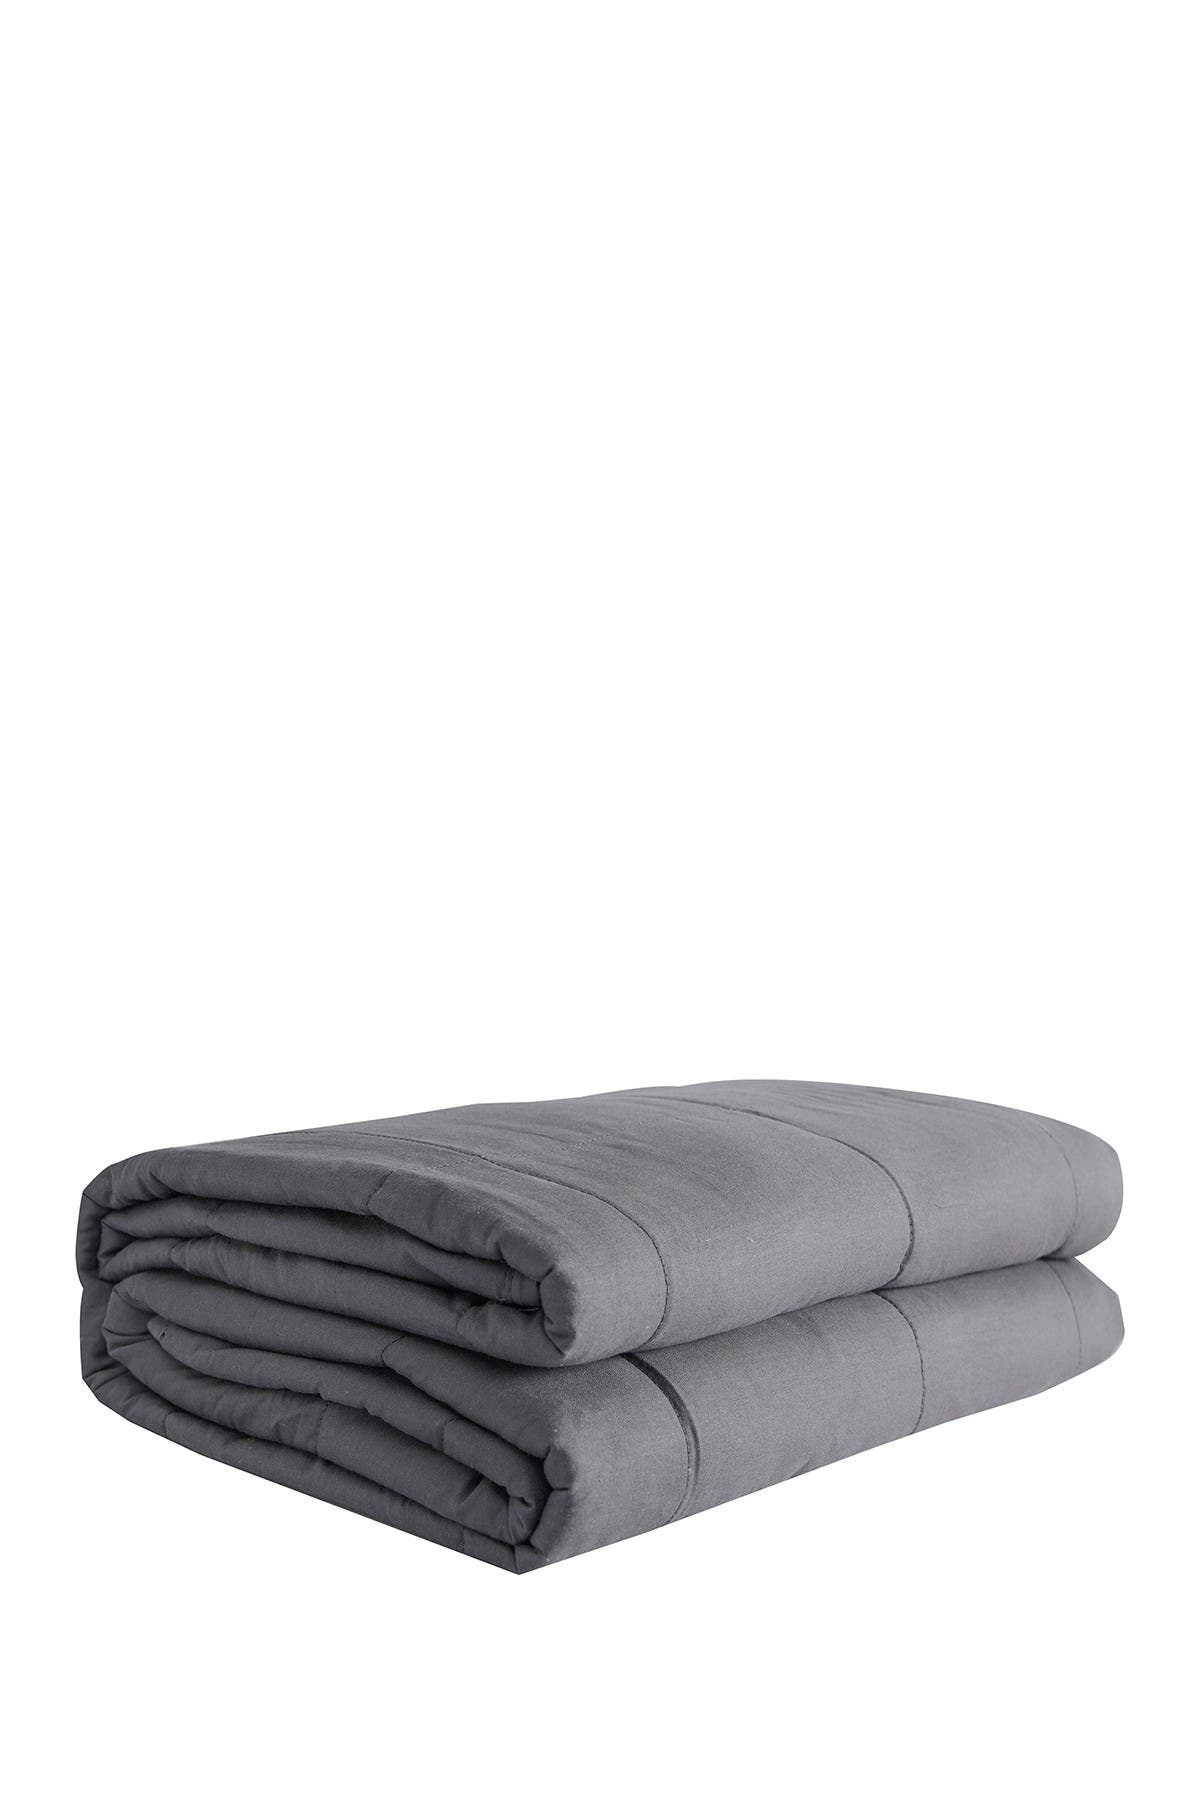 Pur Serenity 15 Lbs Cotton Weighted Blanket 48 X 72 Dark Grey Nordstrom Rack